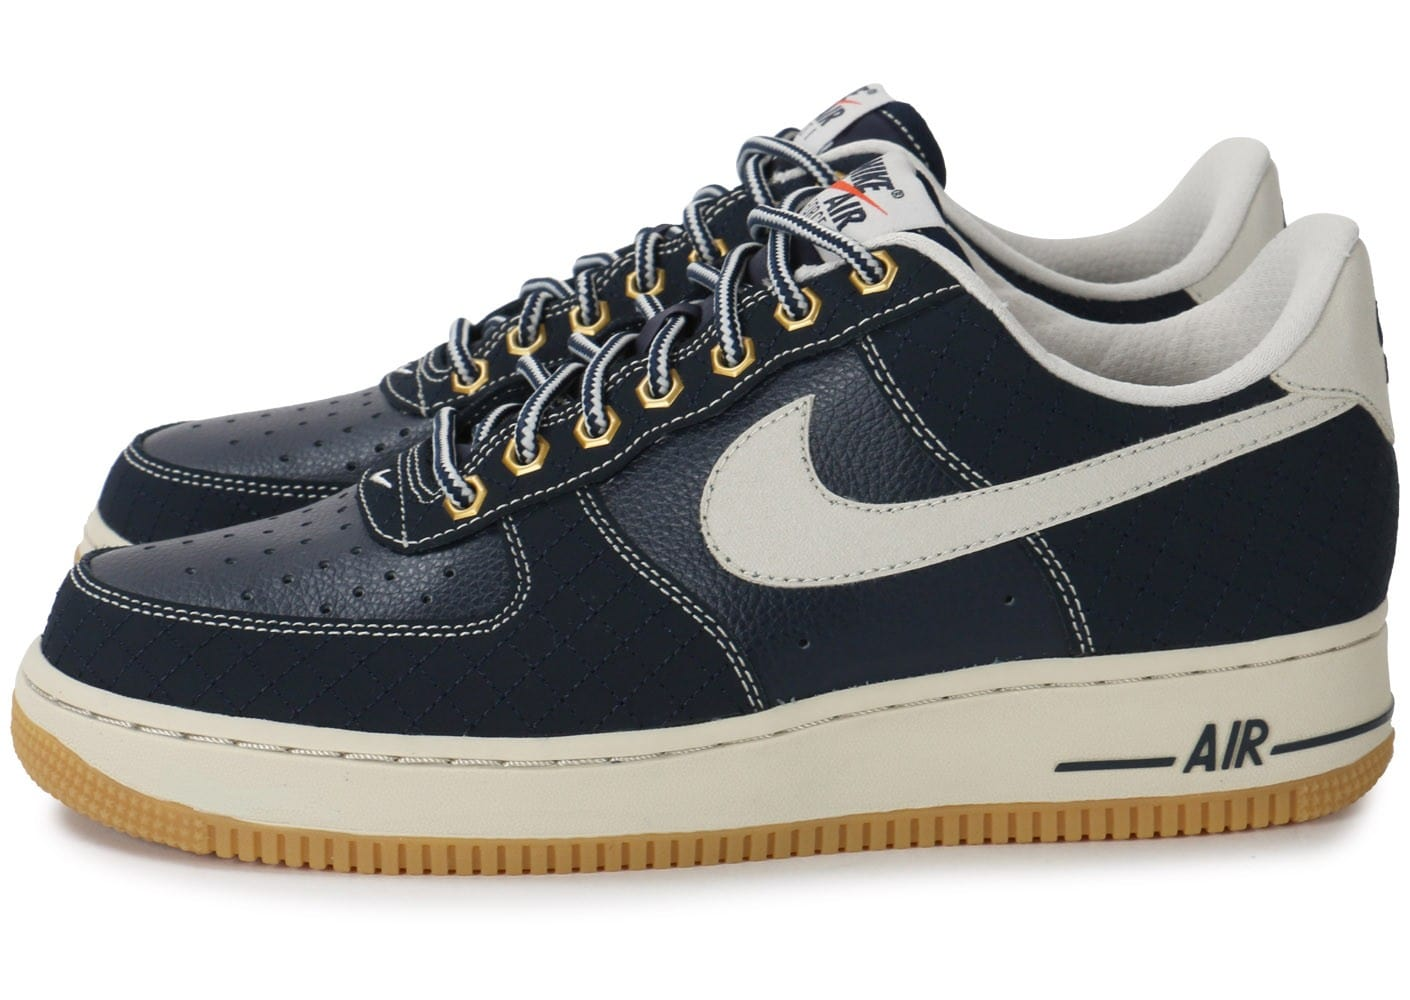 nouveaux styles 81f8c 5b220 Nike Air Force 1 Low bleu marine - Chaussures Baskets homme ...